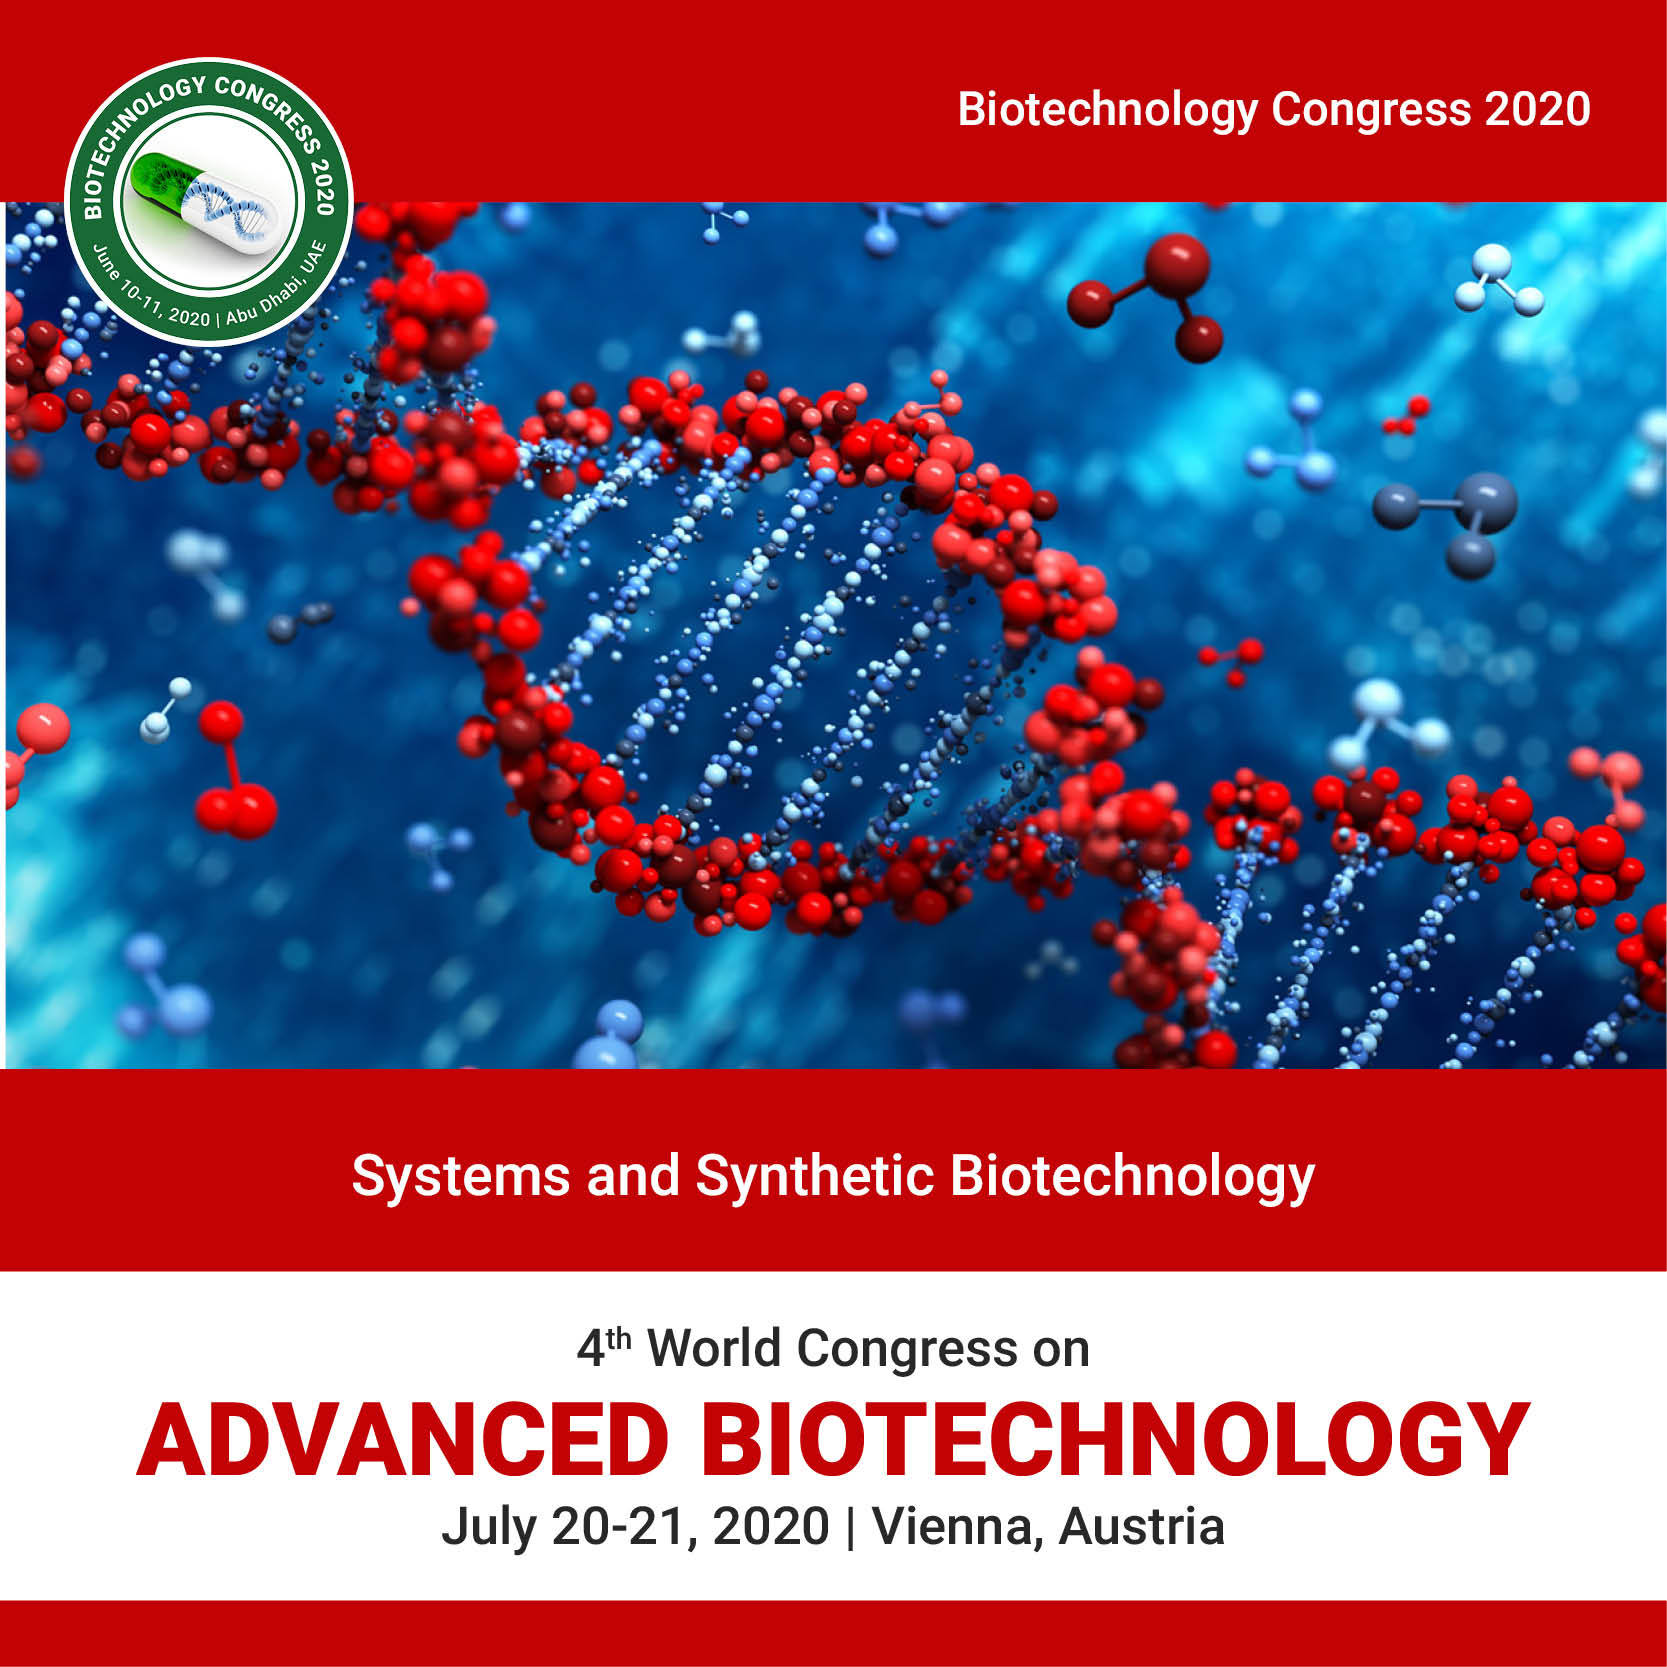 Systems and Synthetic Biotechnology Photo